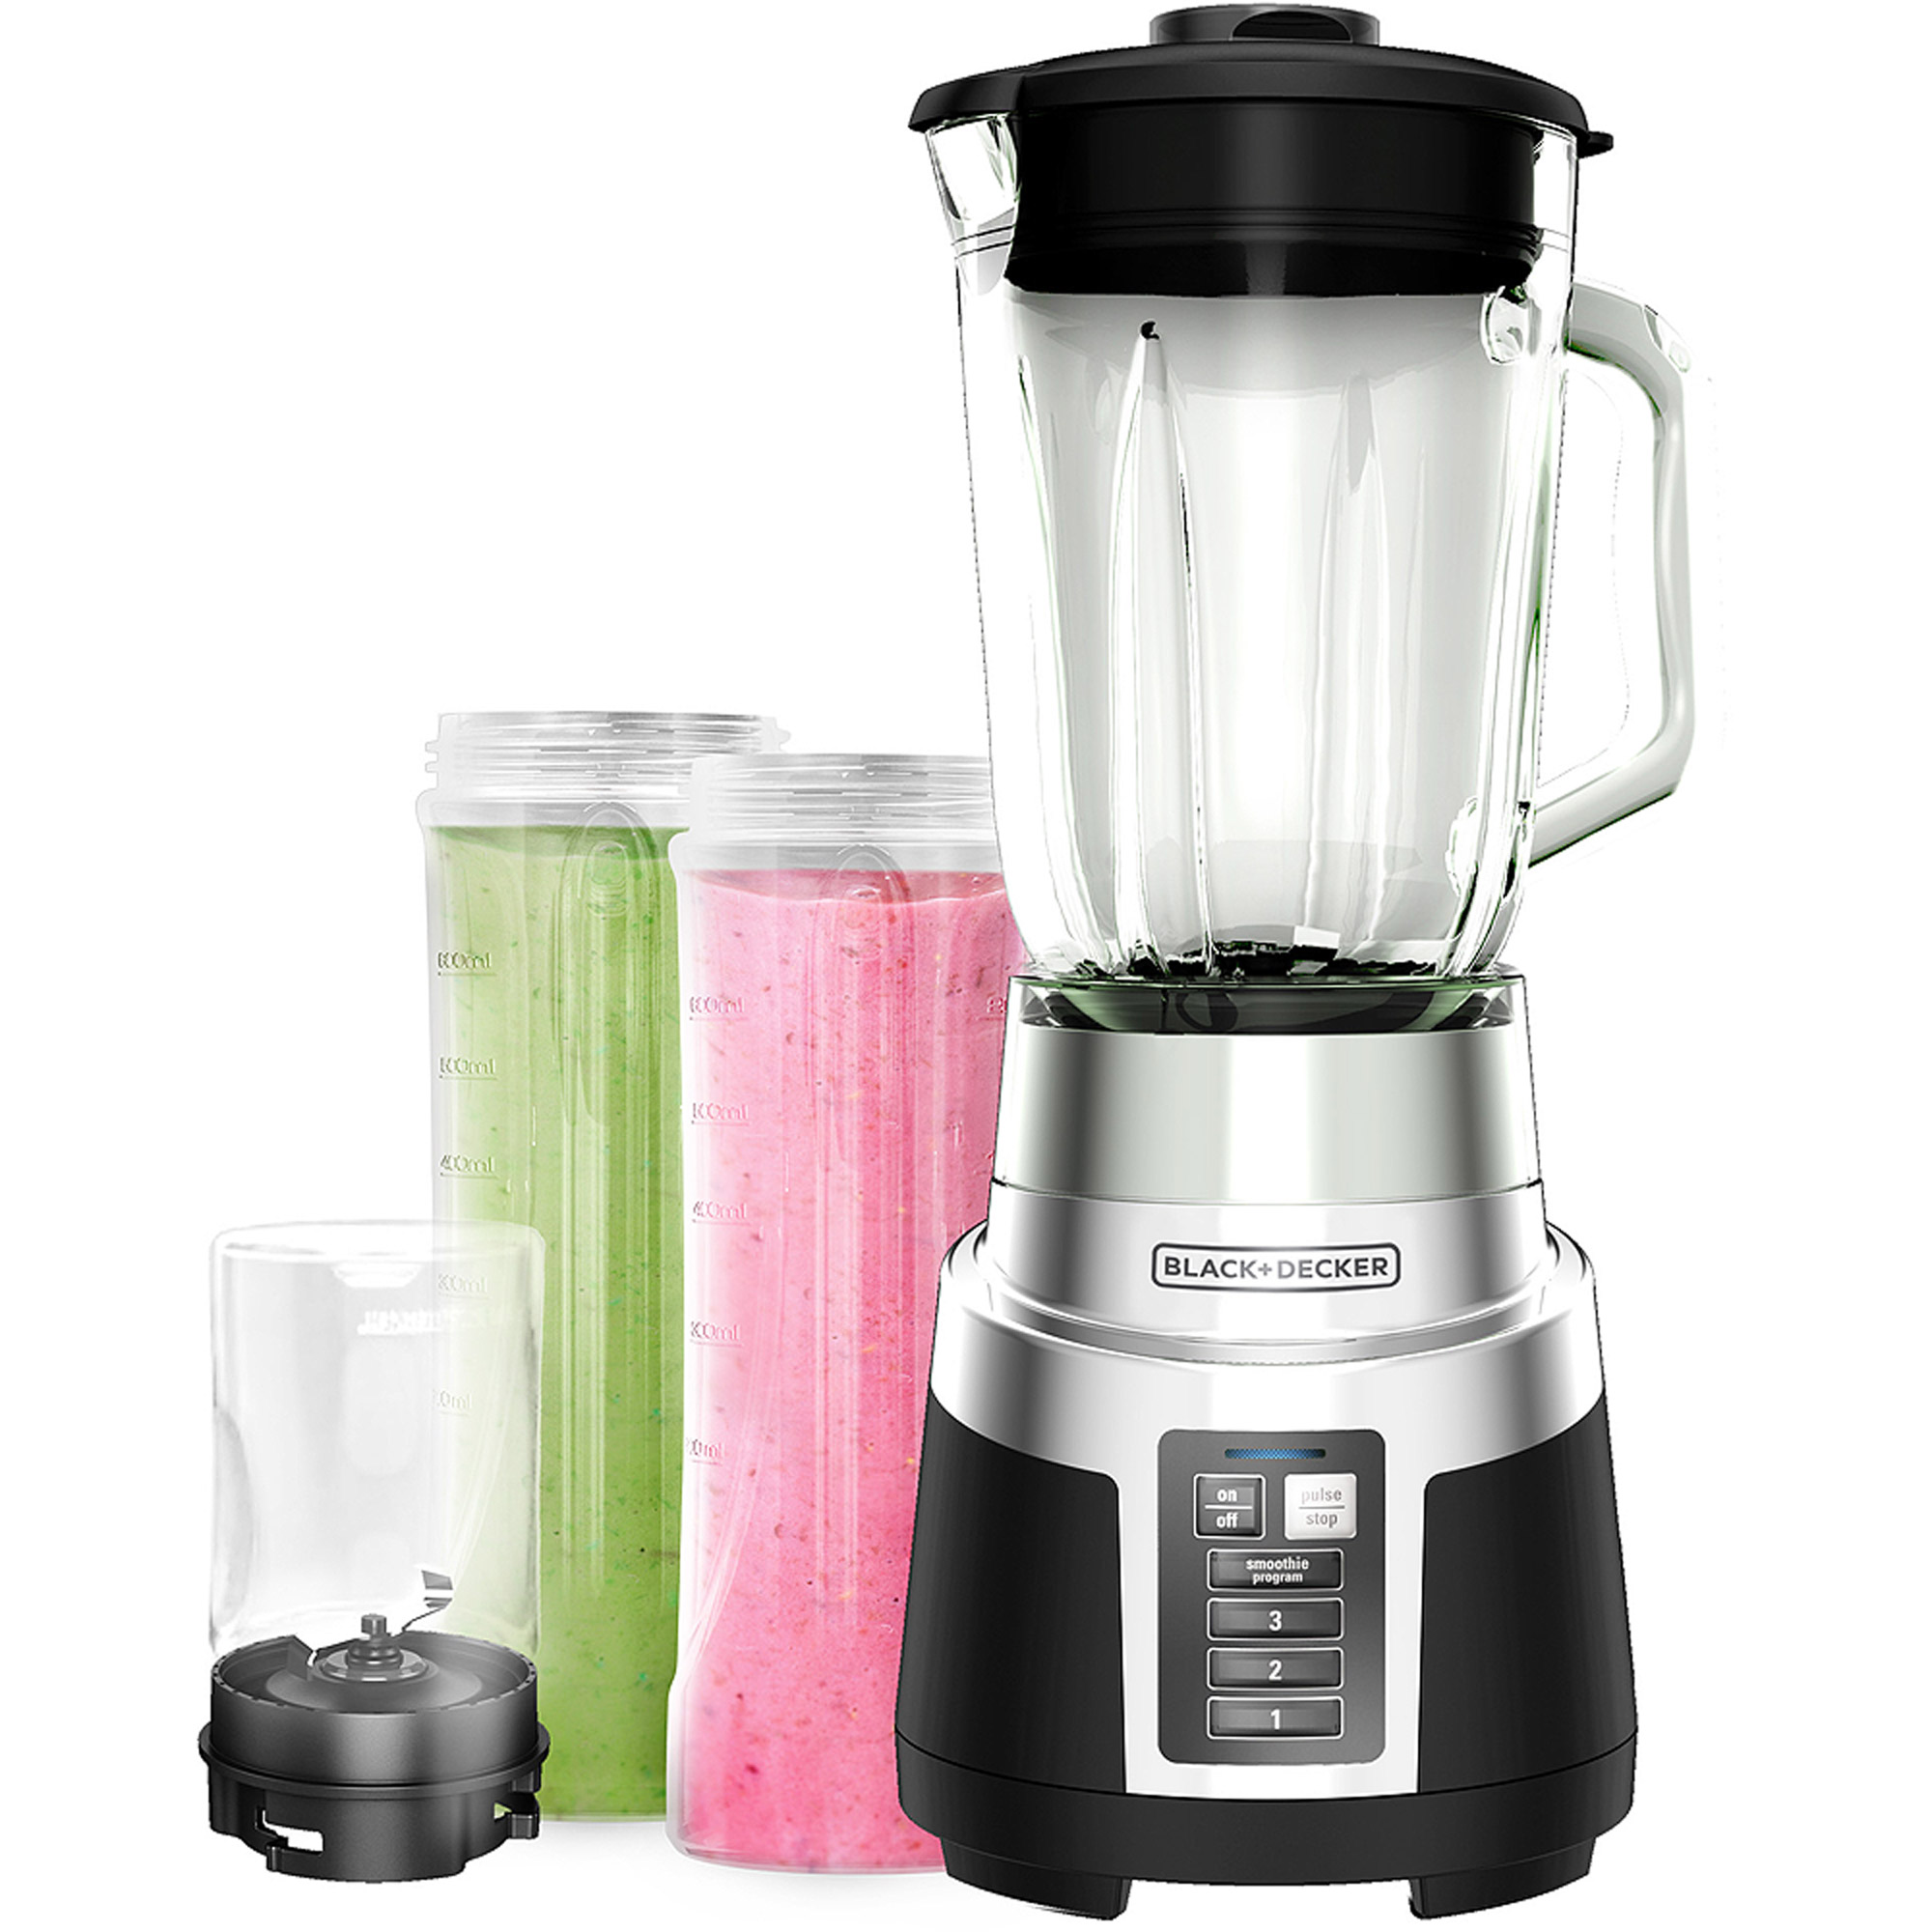 BLACK+DECKER FusionBlade Blender with 2 Personal-Size Jars and Grinding Jar, BL1830SG-3P by Black & Decker